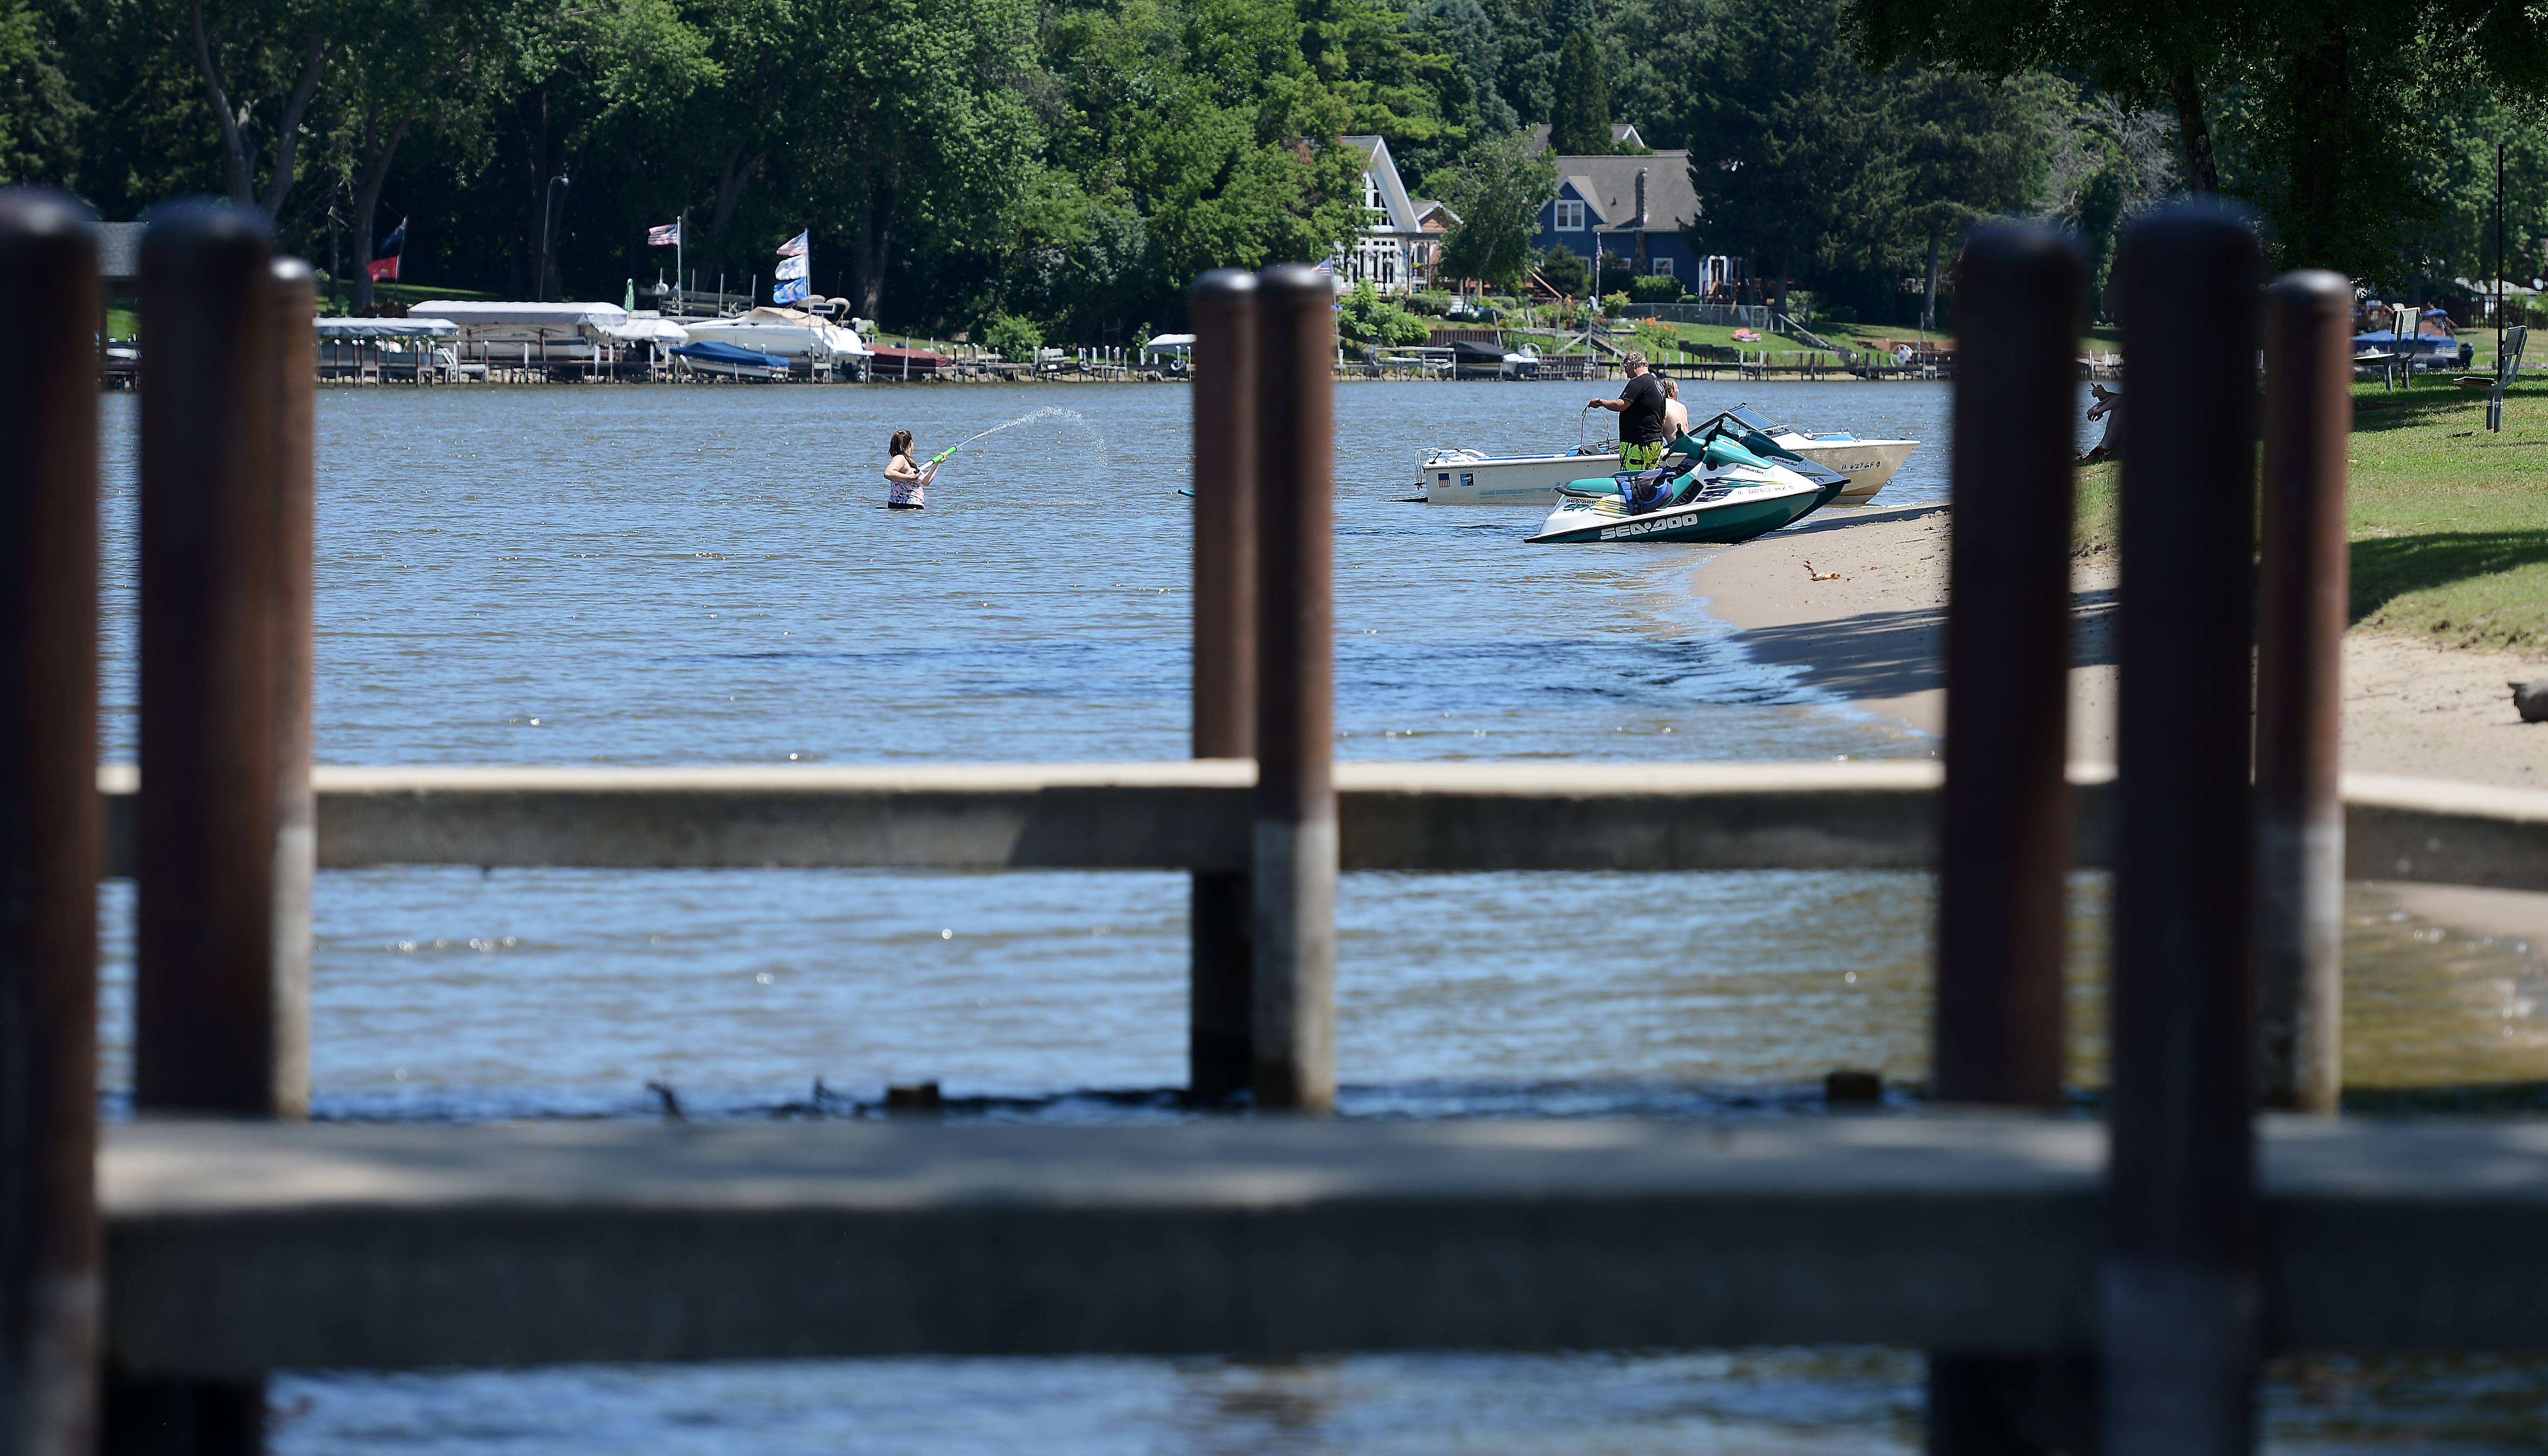 A 6-year-old boy from Cary was injured Sunday after being hit by a motorboat in the Fox River near Picnic Grove Park beach in Fox River Grove.